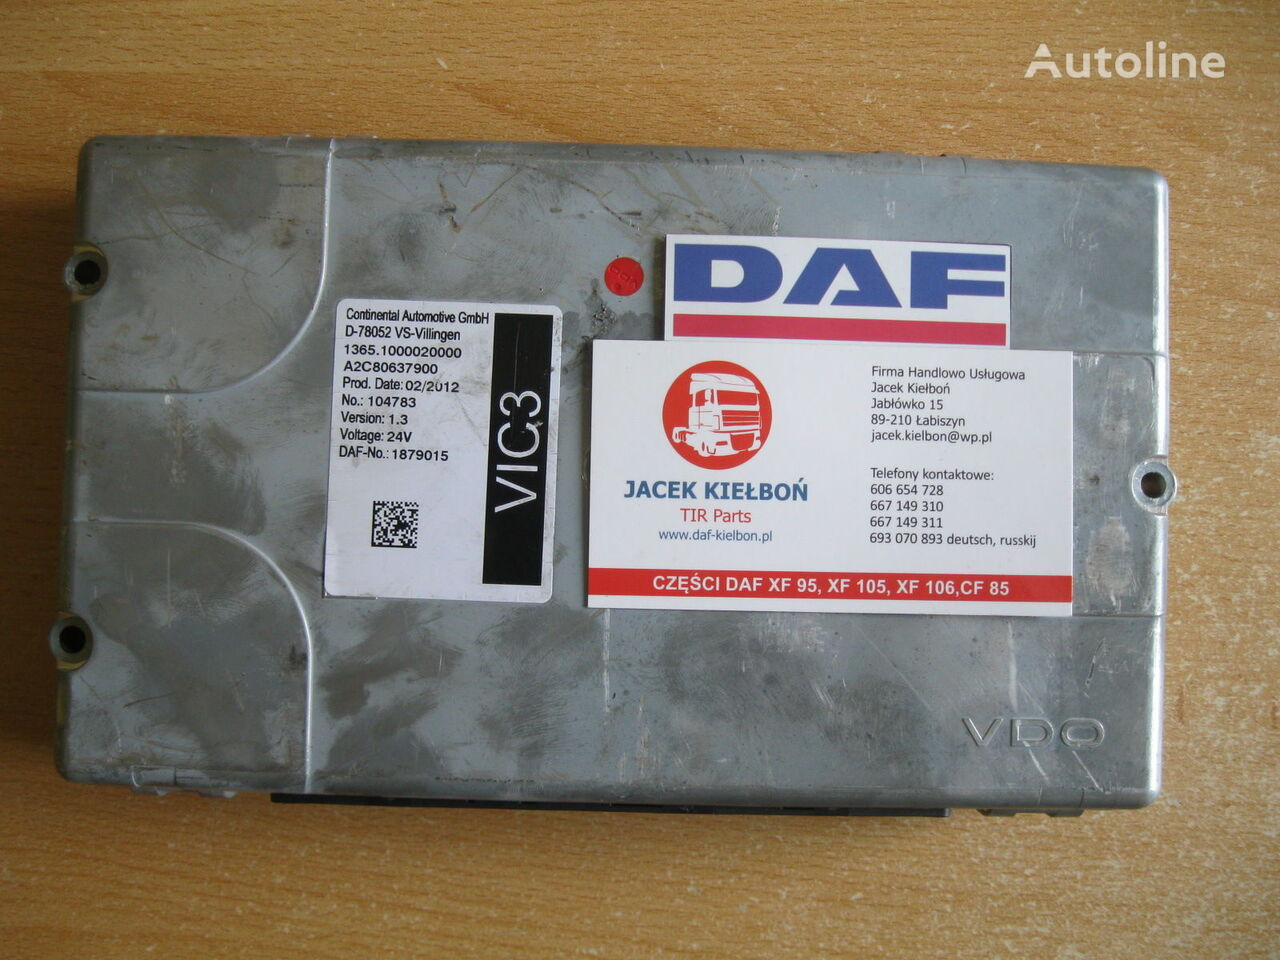 Continental STEROWNIK VIC 3 1.3 1.1 control unit for DAF XF 105 tractor unit